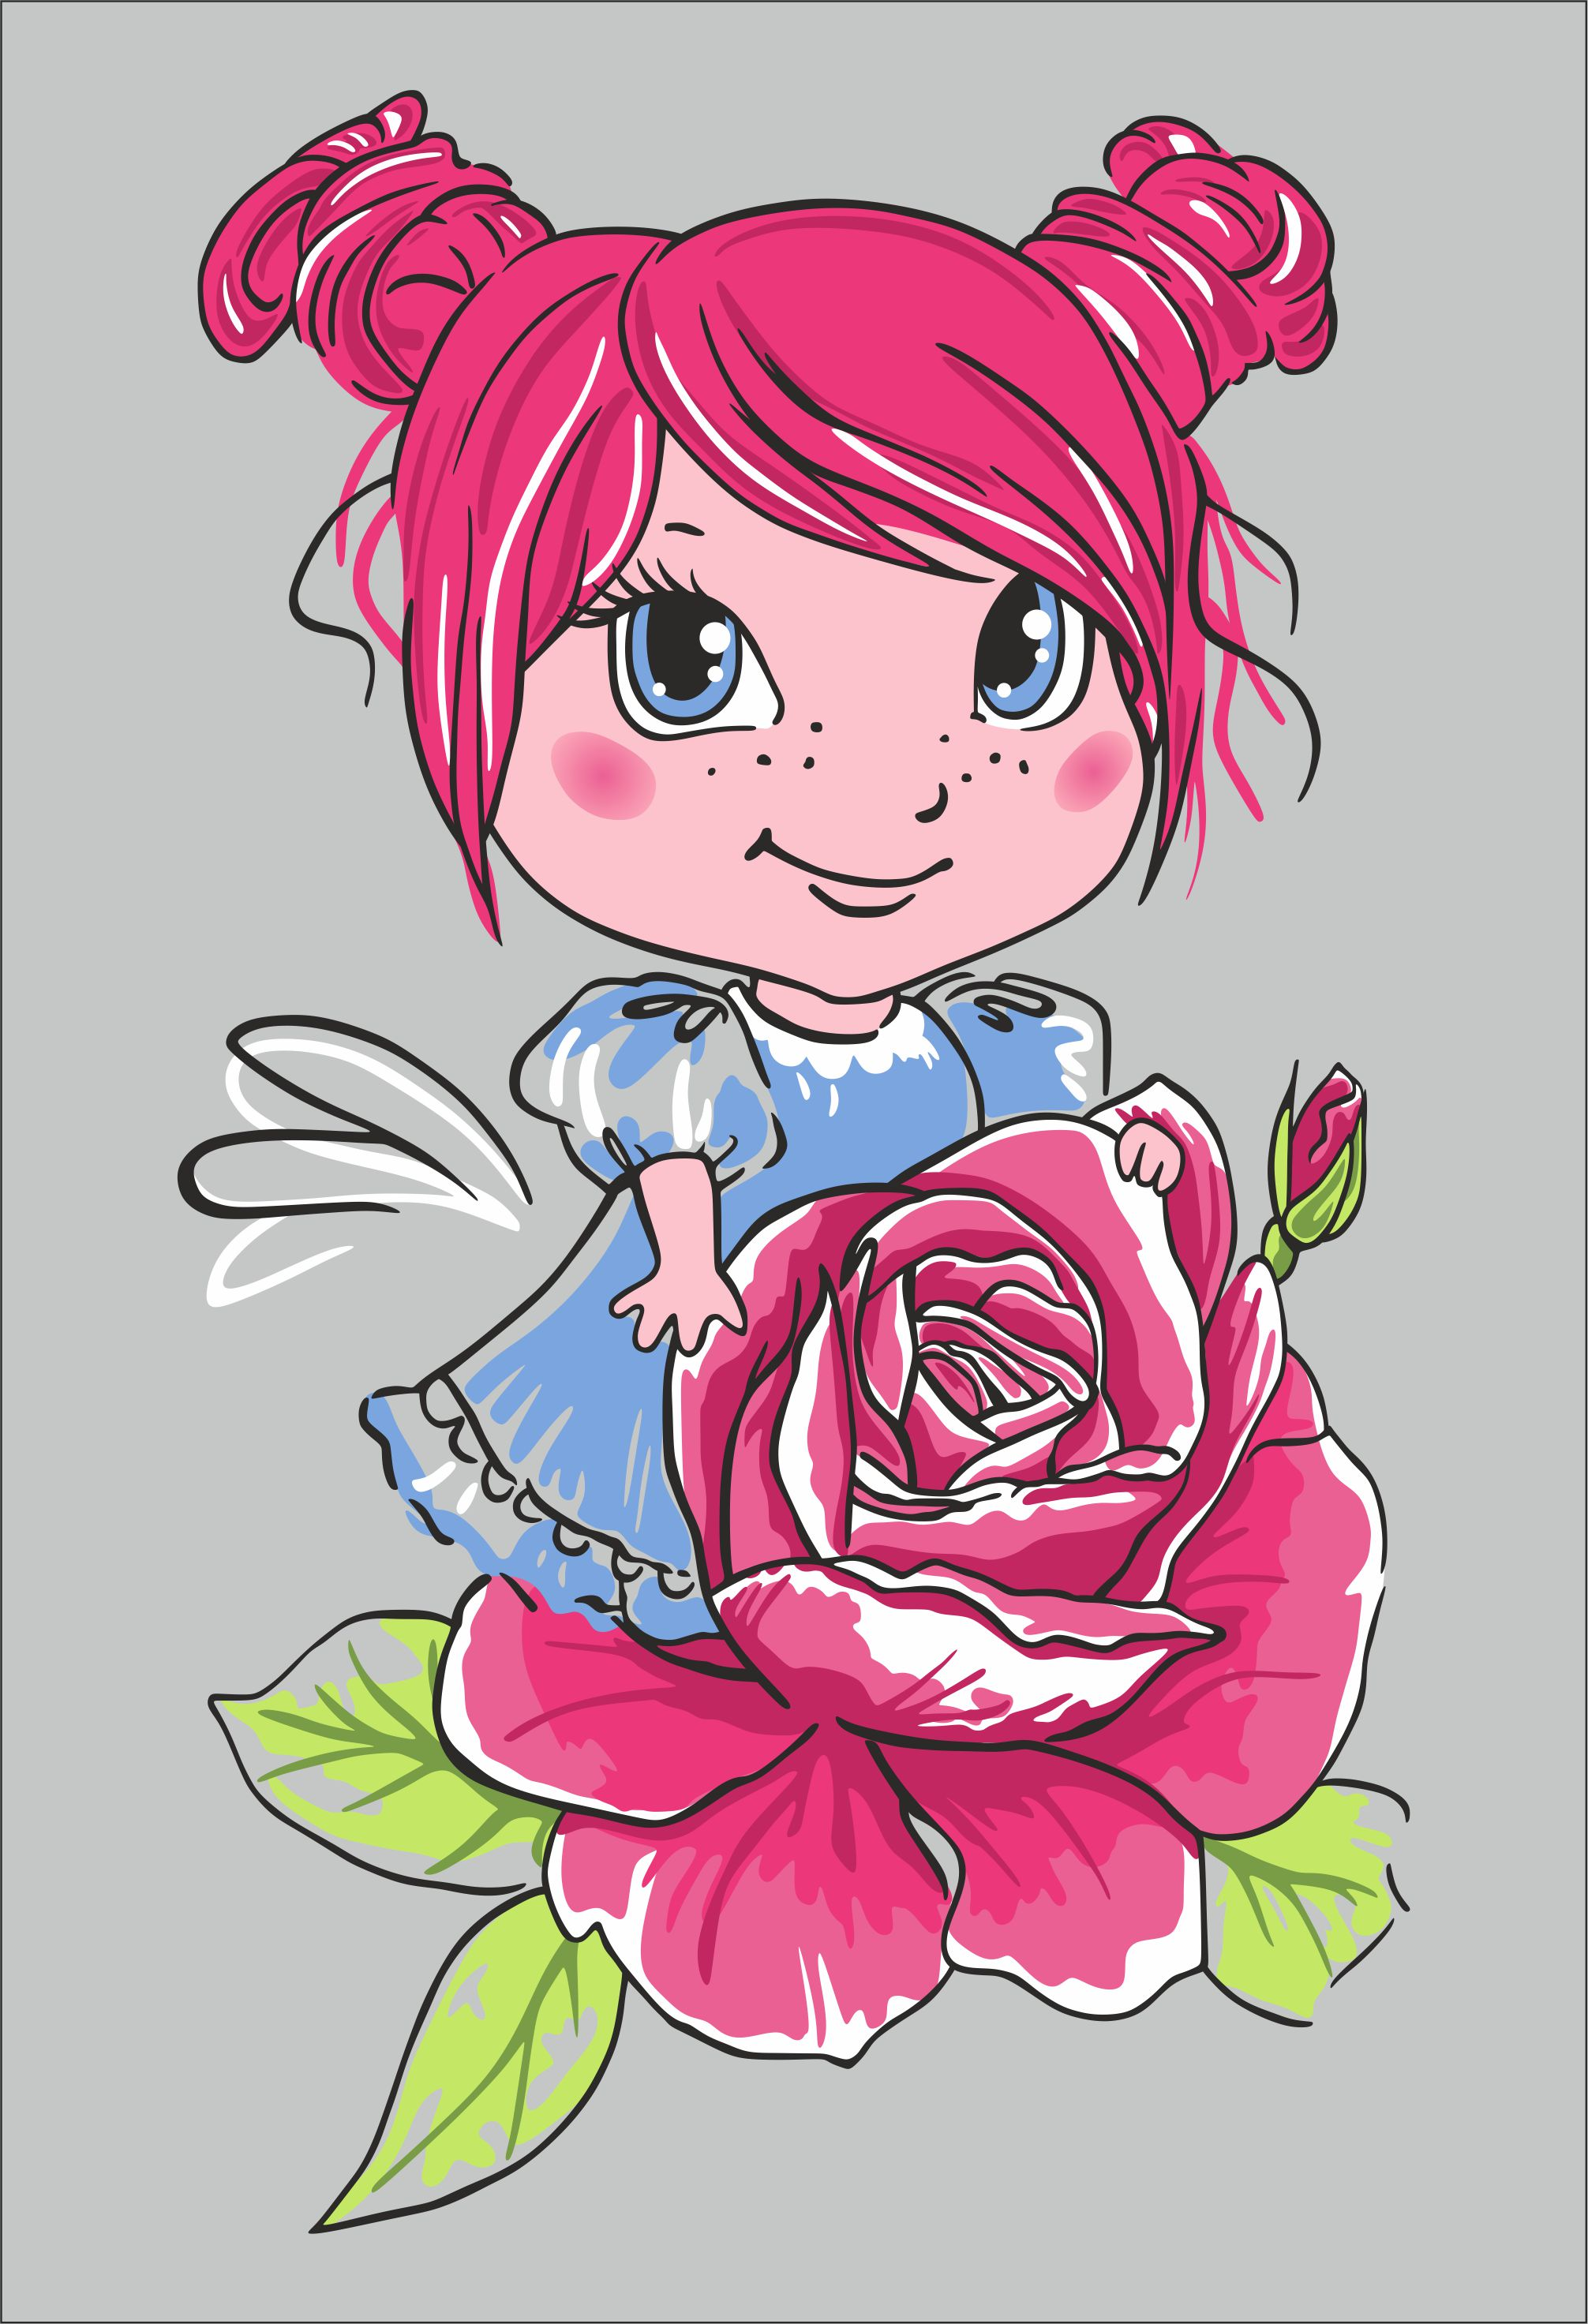 Girl with a rose vector image in Corel Draw